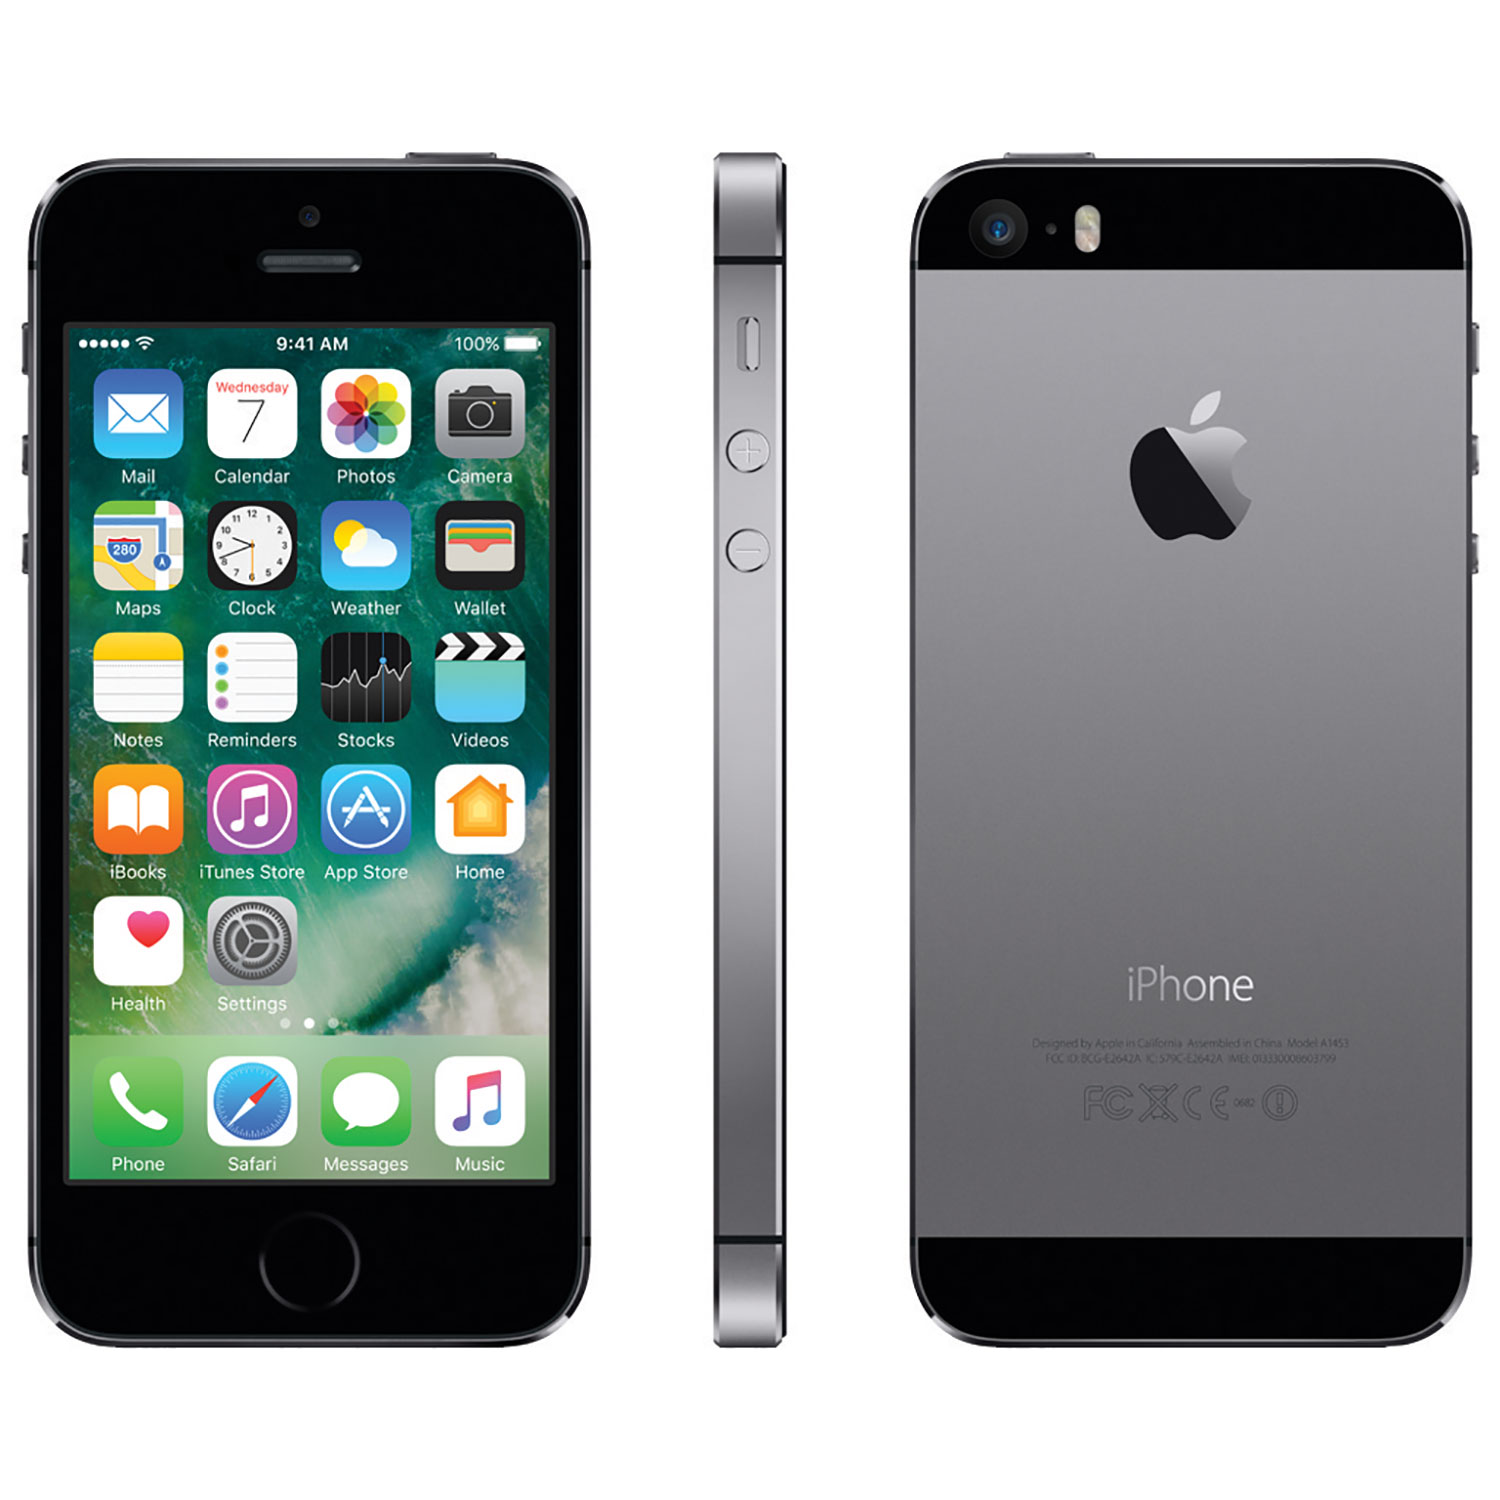 Iphone 5s 16gb brand new unlocked genuine apple iphone best price in - Apple Iphone 5s 16gb Space Grey Unlocked